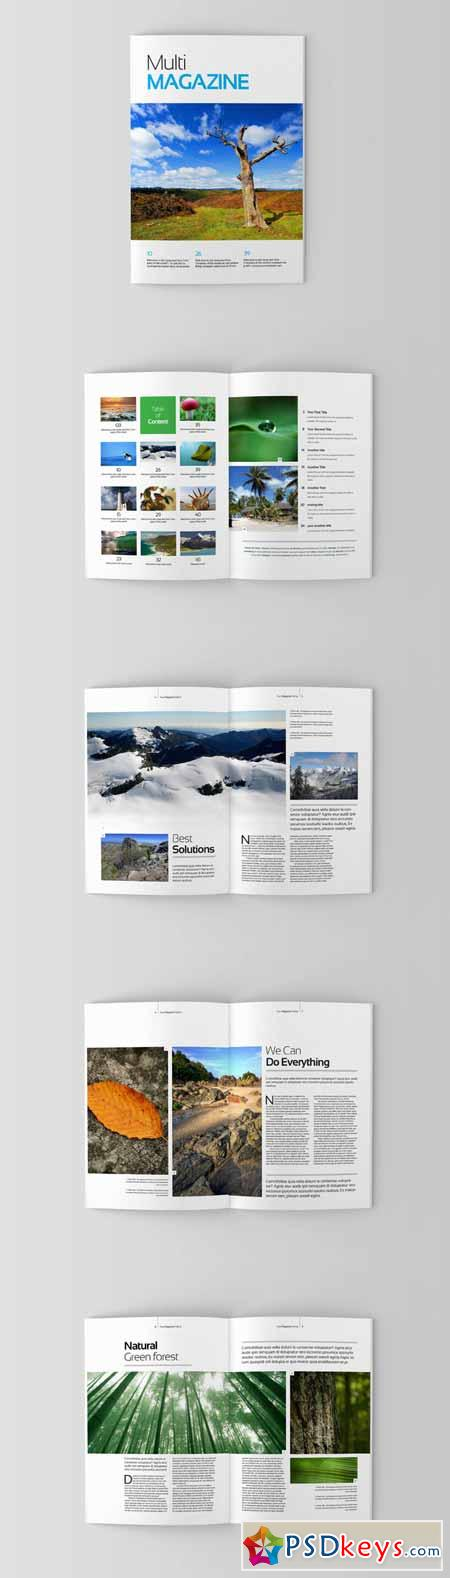 Magazine Editorial Template 04 14728